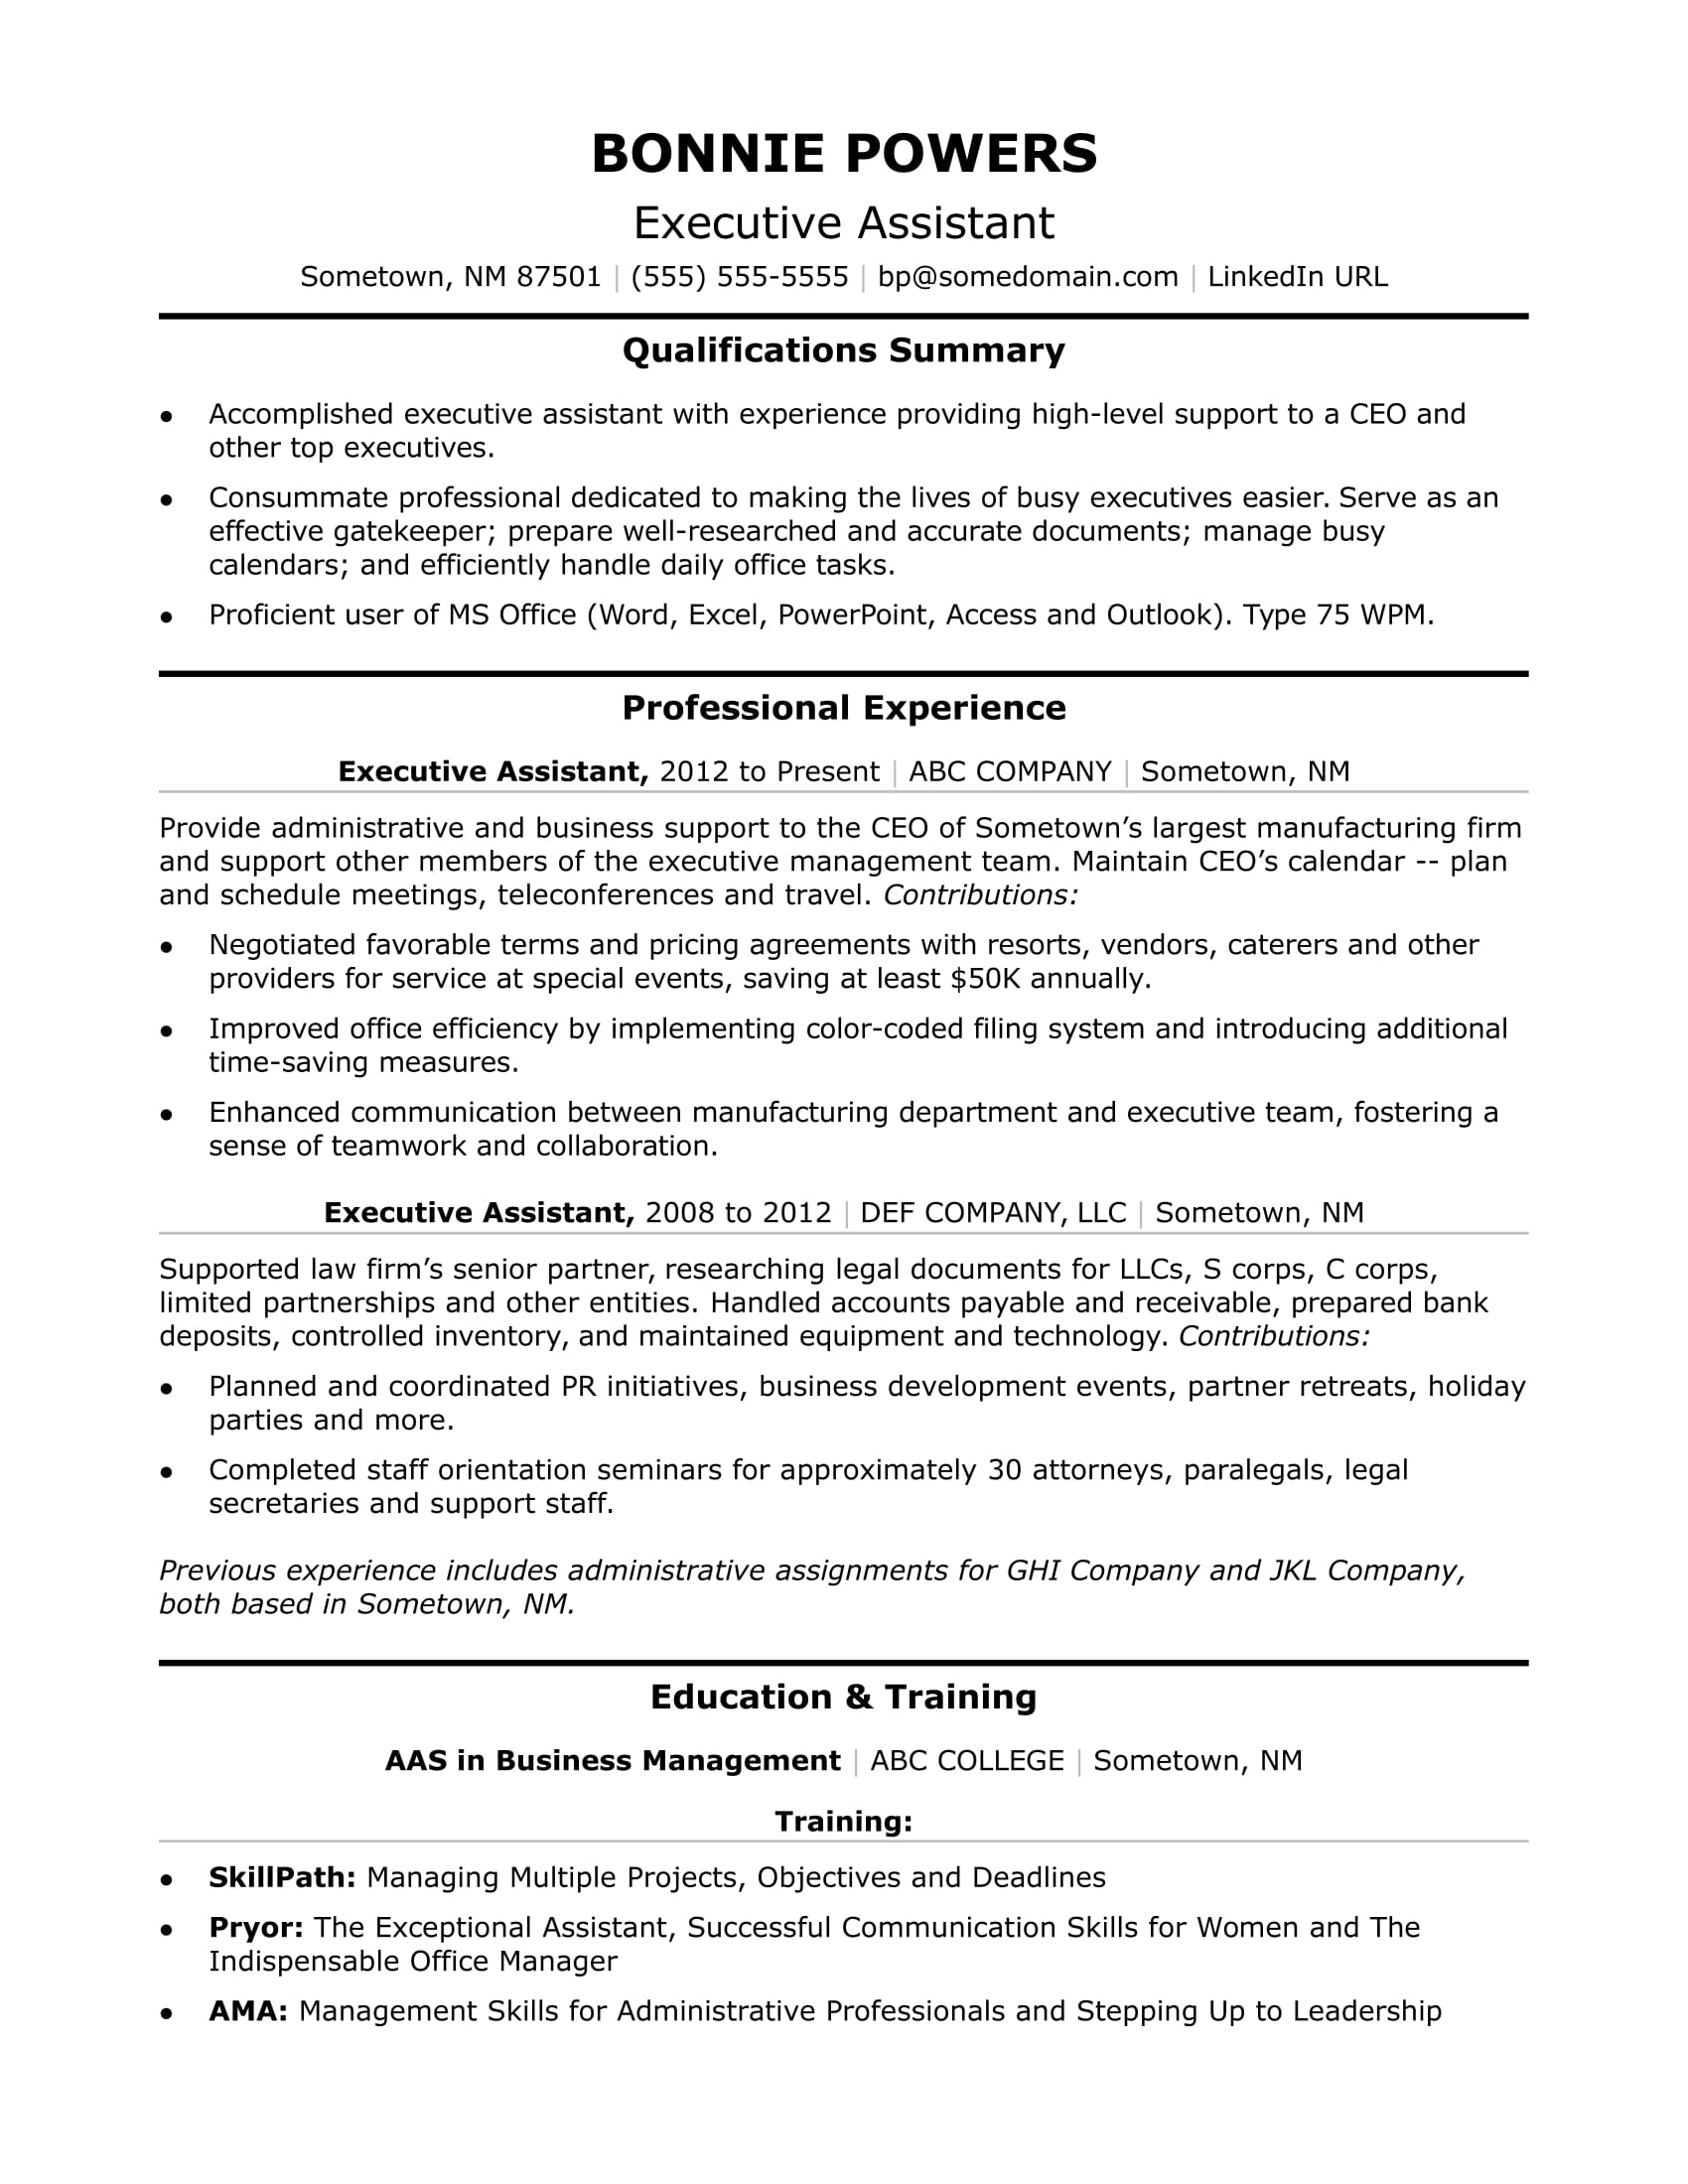 executive administrative assistant resume sample monster professional summary of Resume Professional Resume Summary Of Qualifications